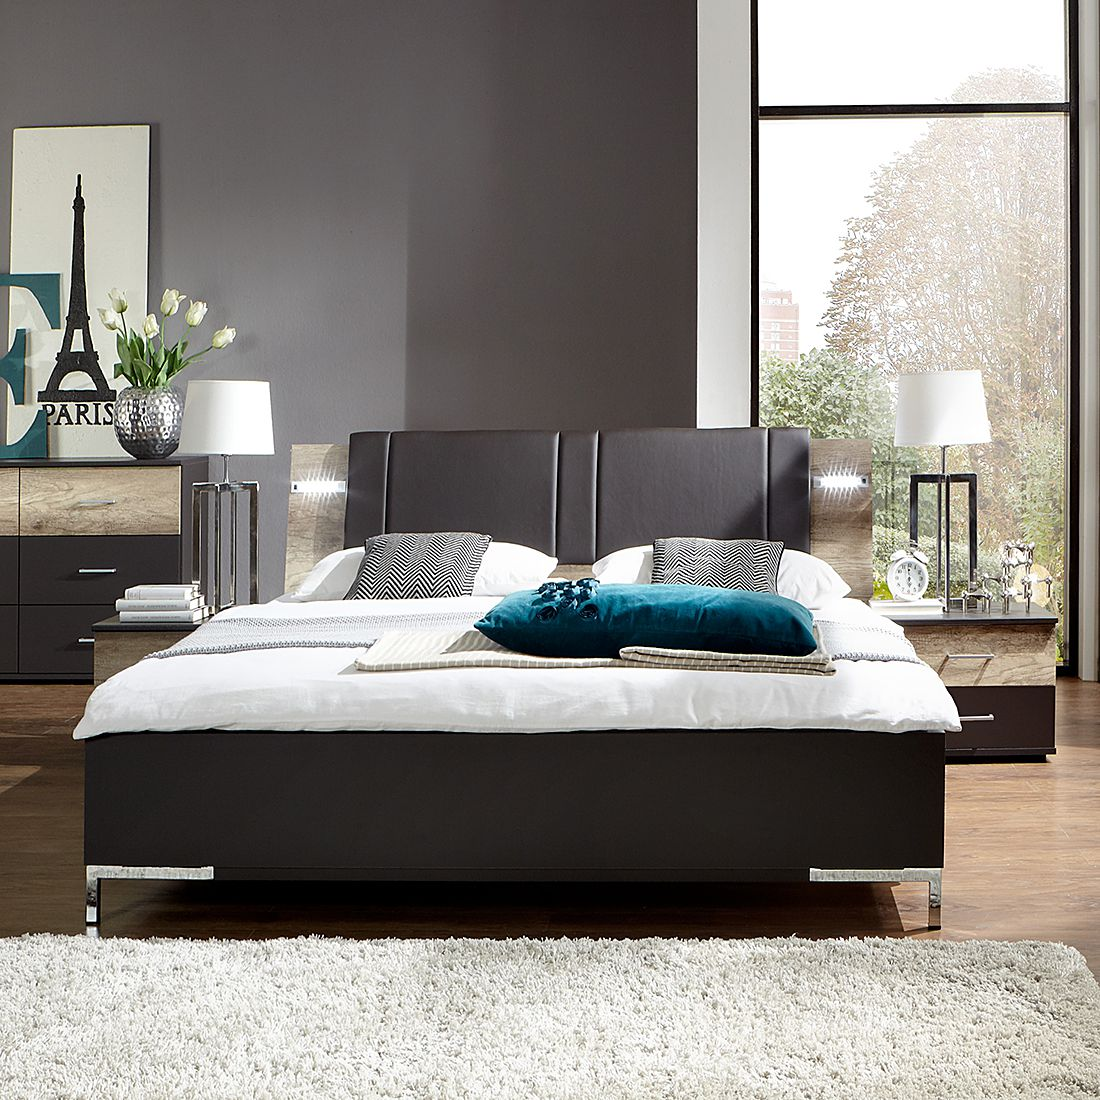 bettanlage manula 3 teilig lava wildeiche dekor liegefl che 180 x 200 cm. Black Bedroom Furniture Sets. Home Design Ideas